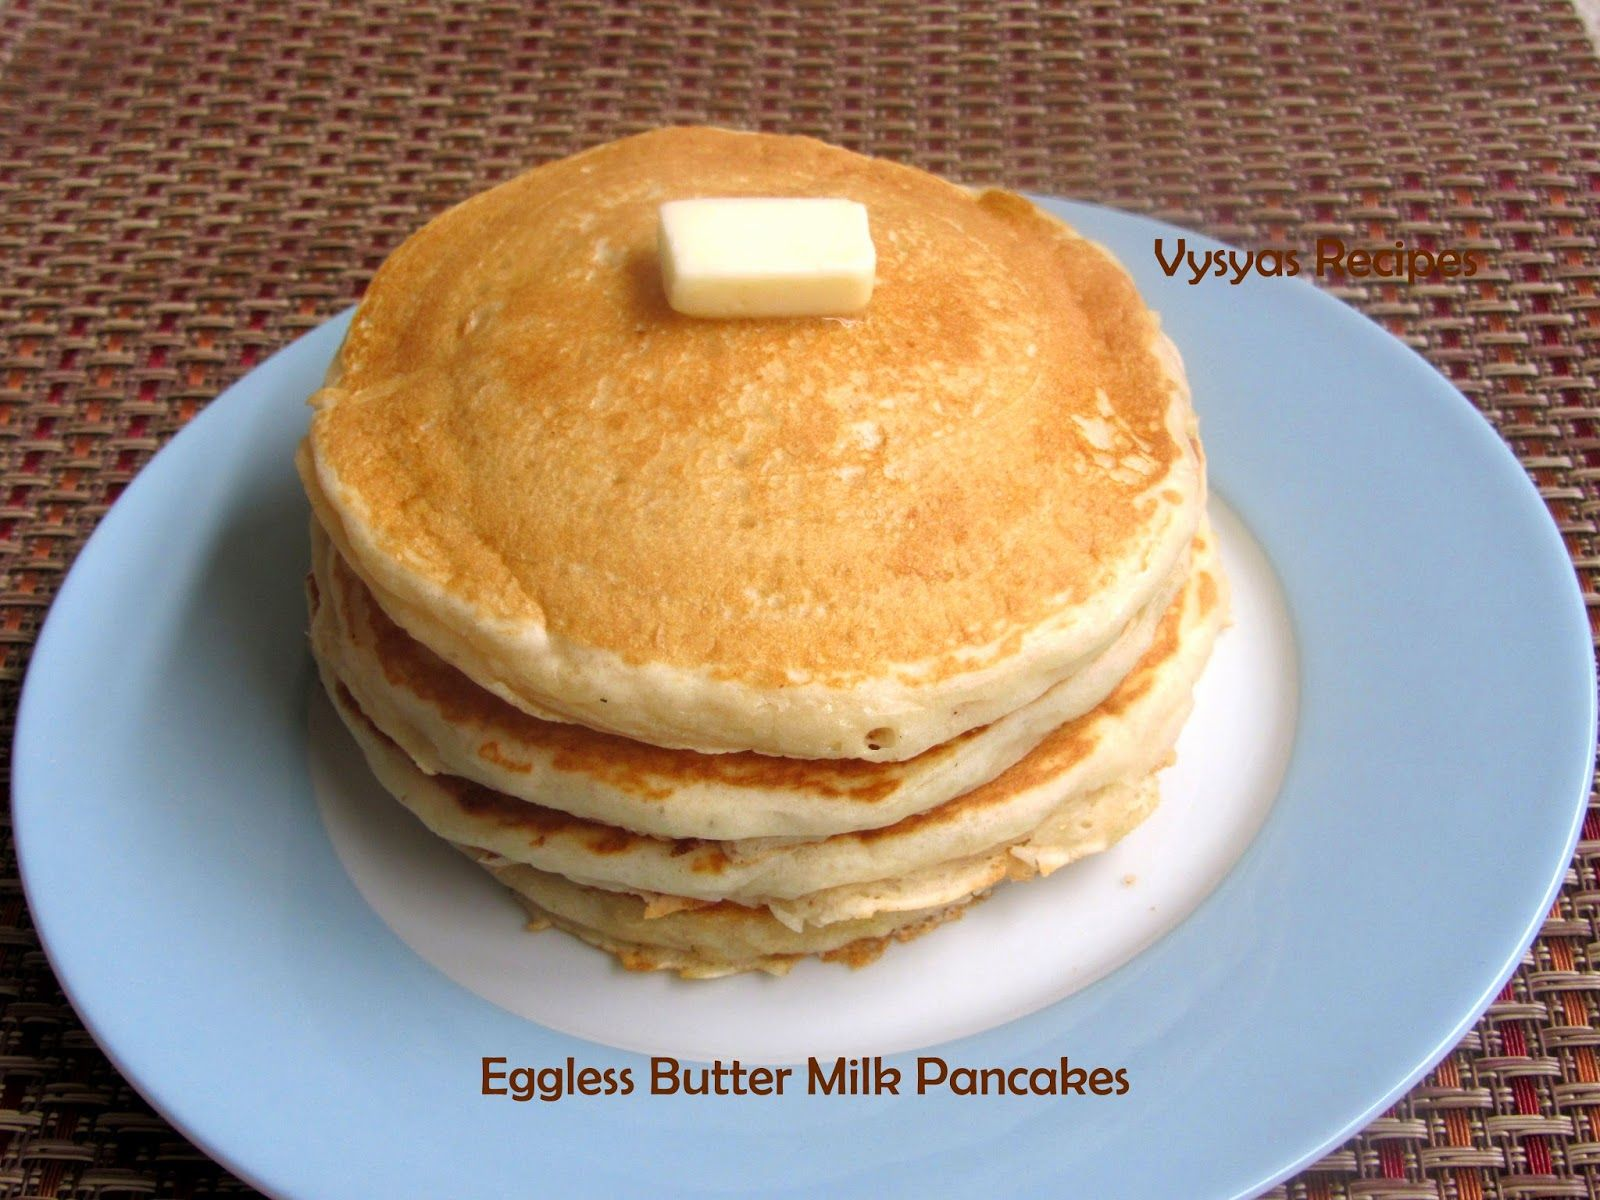 Eggless Buttermilk Pancakes Light Spongy Fluffy Easy Pancakes Pancakes Easy Fluffy Pancake Recipe Pancake Recipe Buttermilk